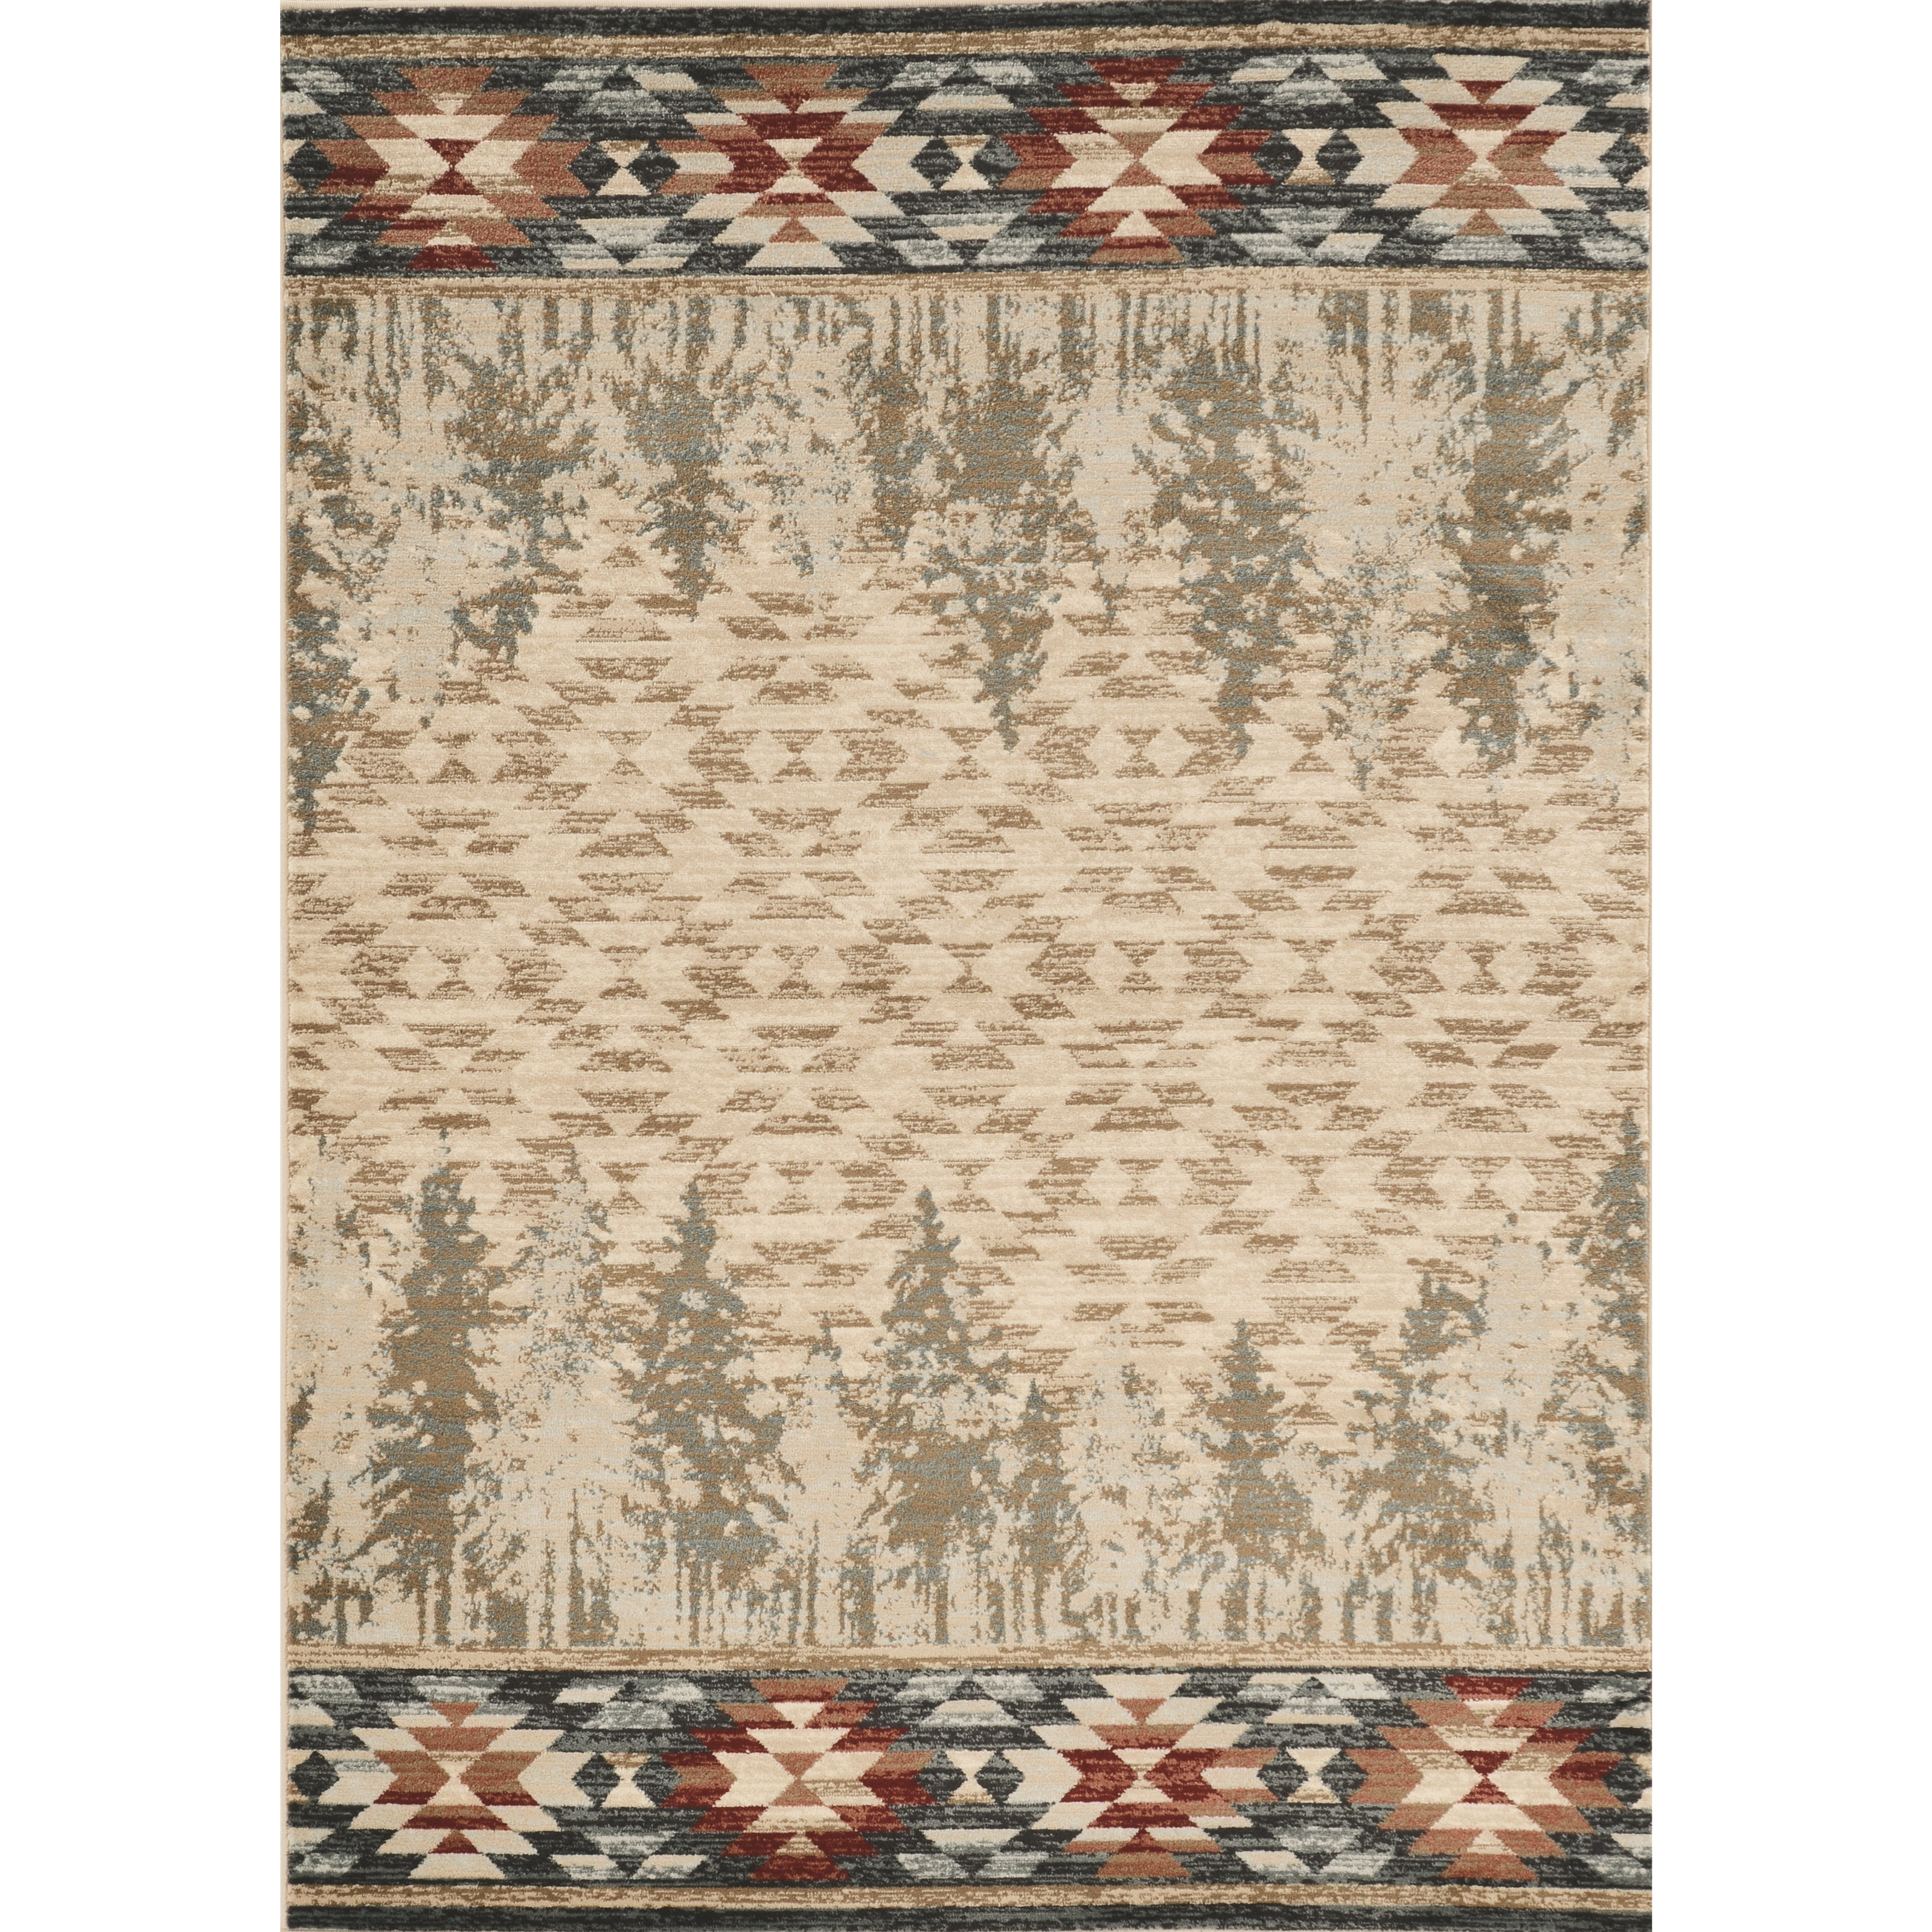 Chester 9' x 12' Ivory Pines Rug by Kas at Darvin Furniture